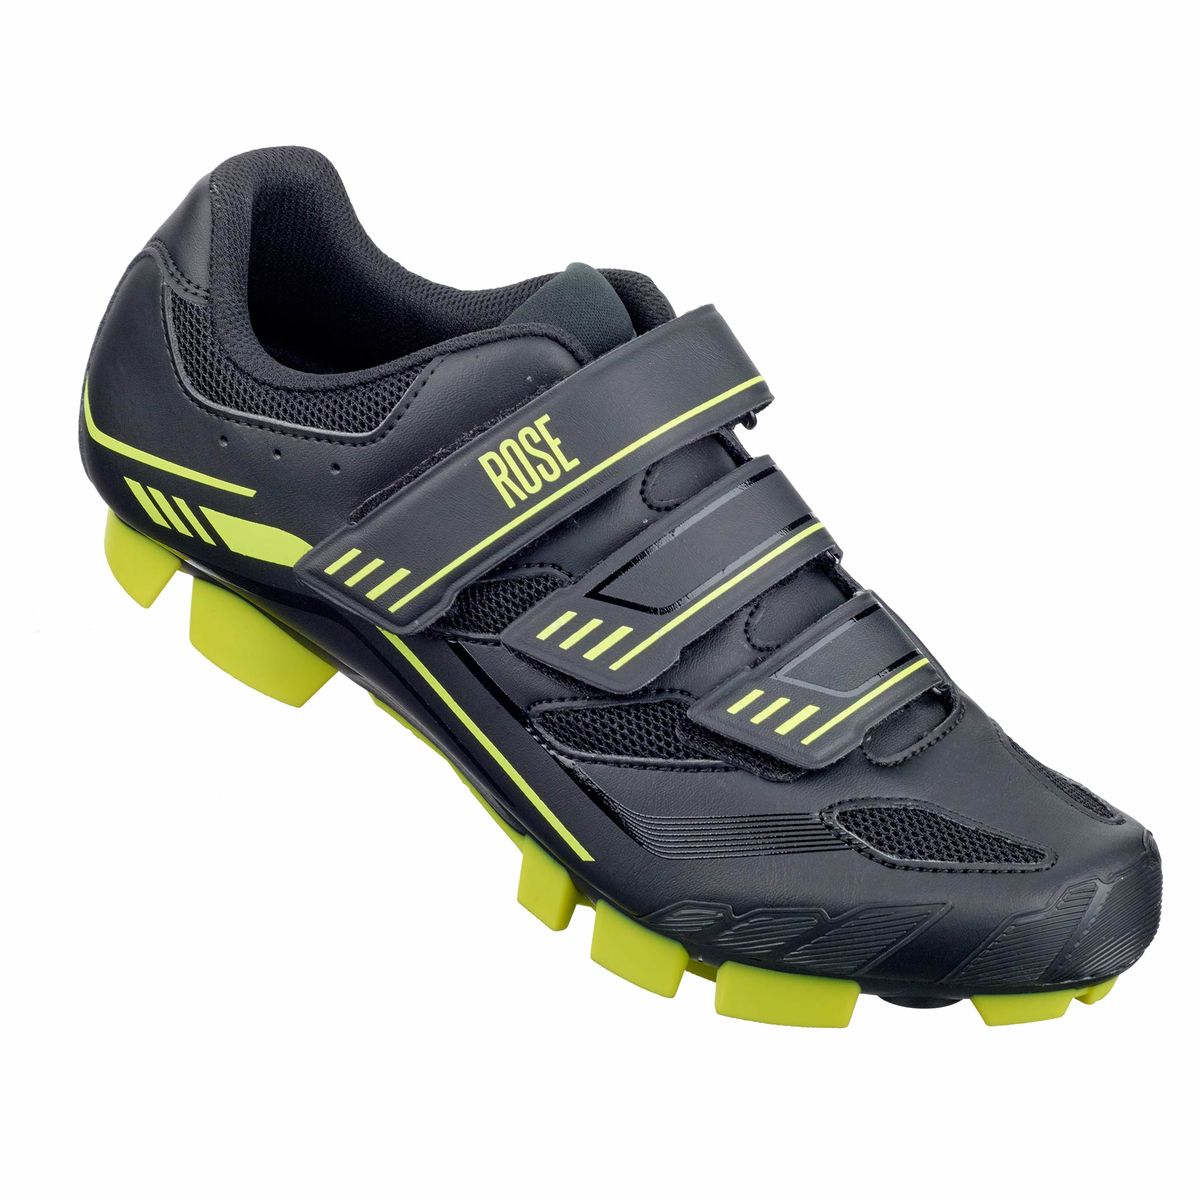 RMS 08 MTB shoes